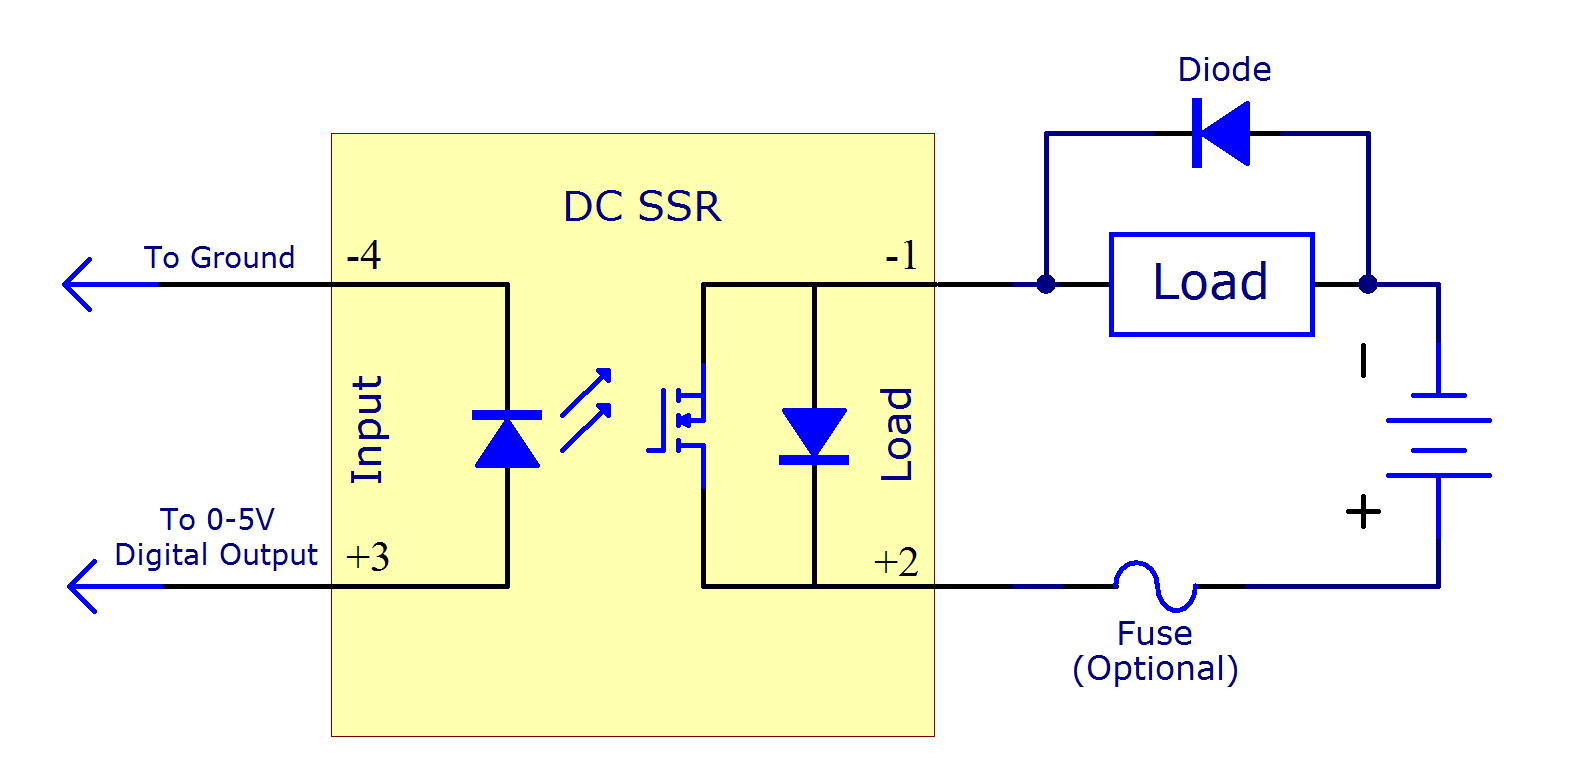 Ssr wiring diagram dc dc wiring diagram solid state relay primer phidgets support metro wiring diagram full size image the electrical isolation built cheapraybanclubmaster